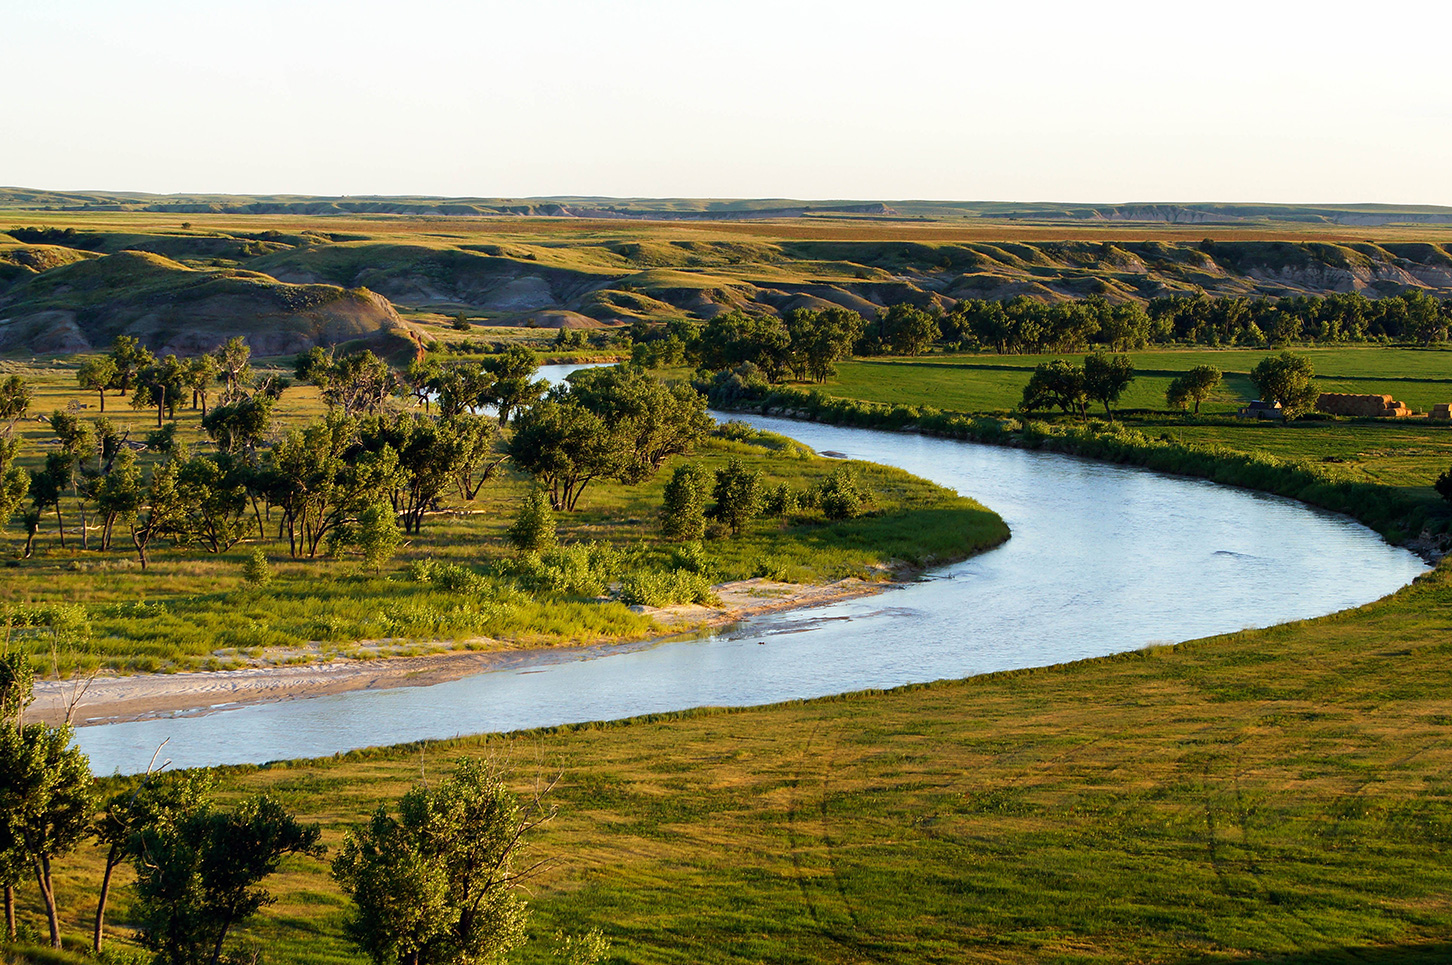 Badlands with a river flowing between grassy plains